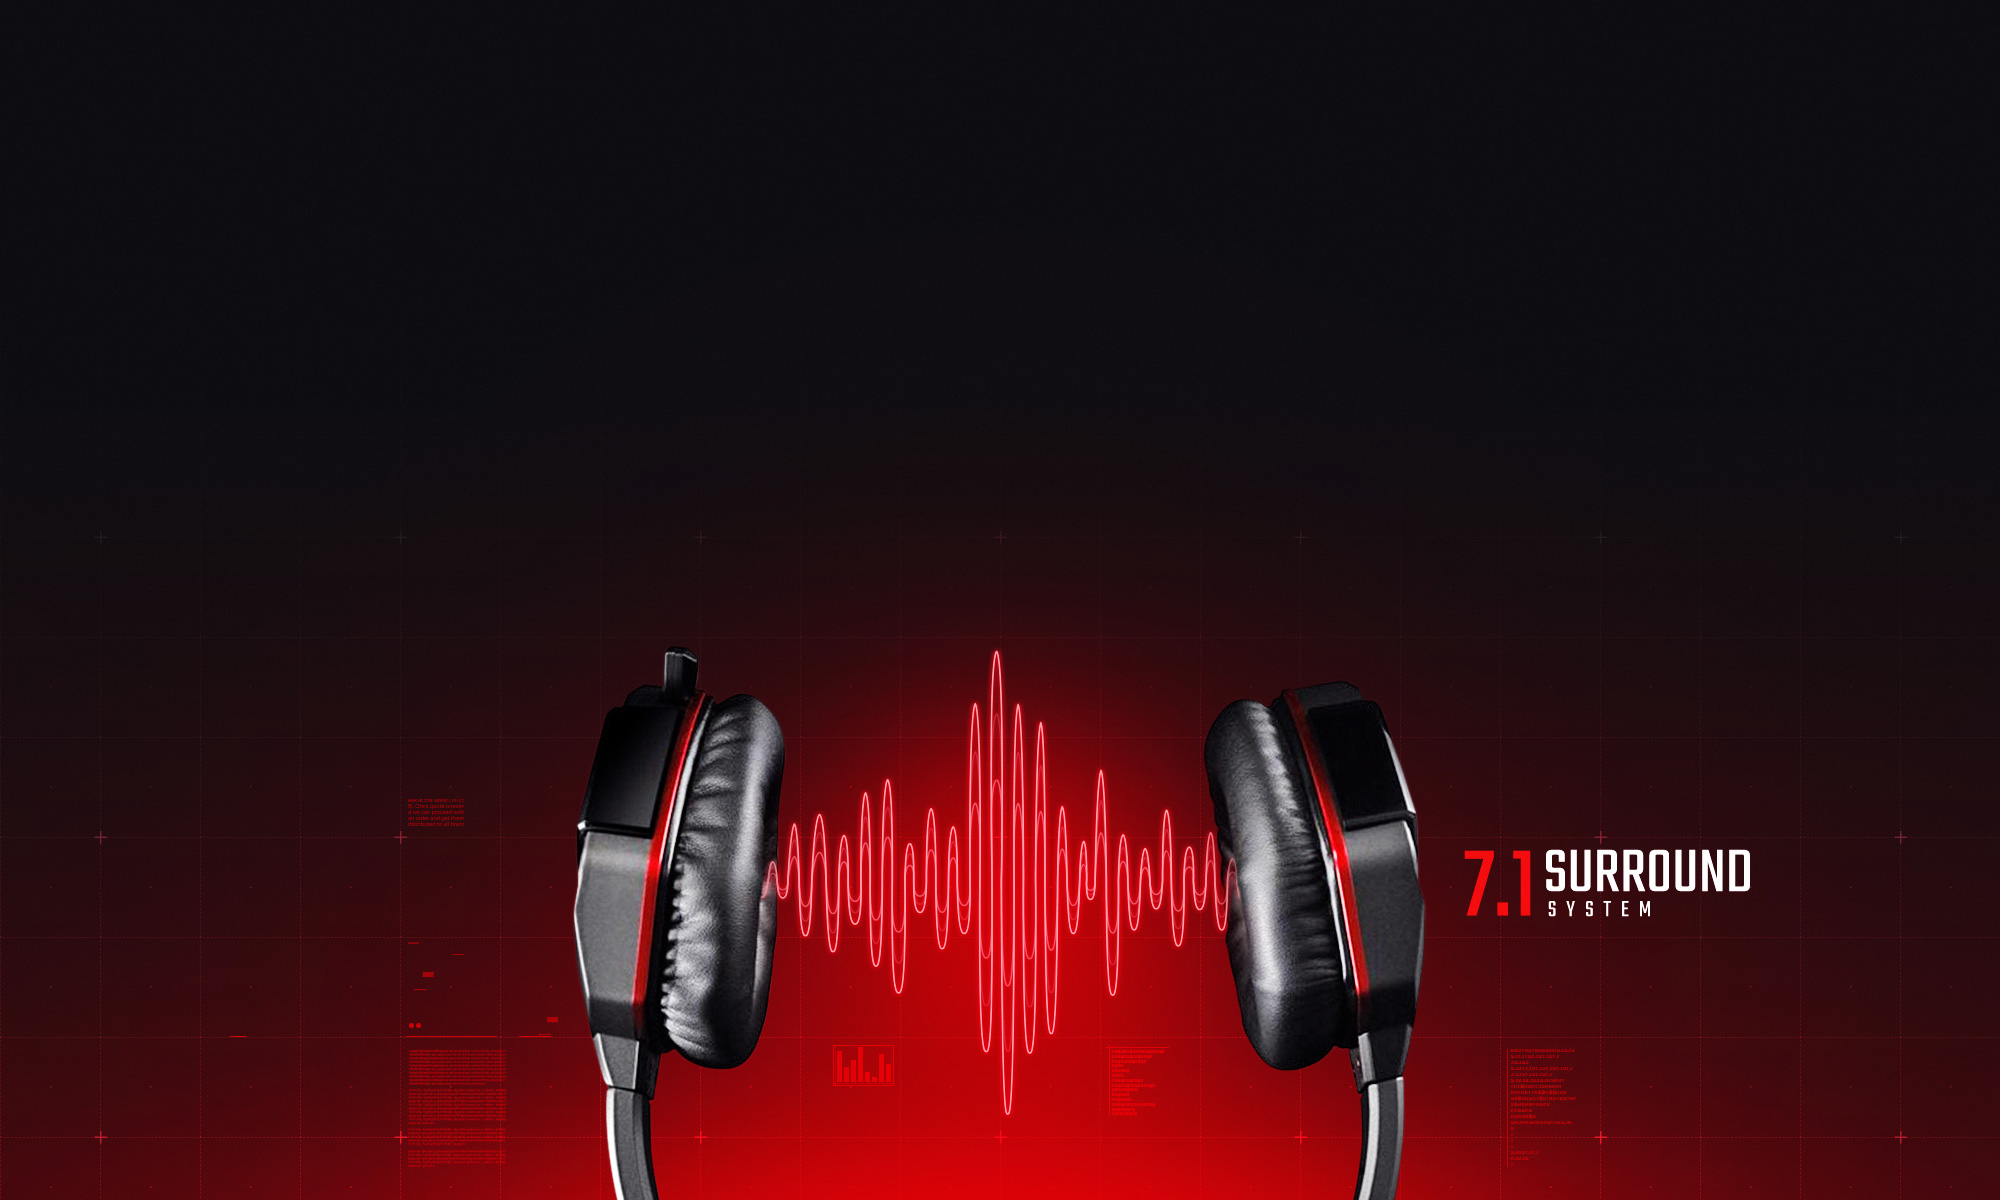 Info Harga Bloody G300 Gaming Headset Terbaru 2018 Sweater Rajut Pria Inficlo Inf317 G501 The Model Supports Surround Sound 71 Making Game Seem Very Real